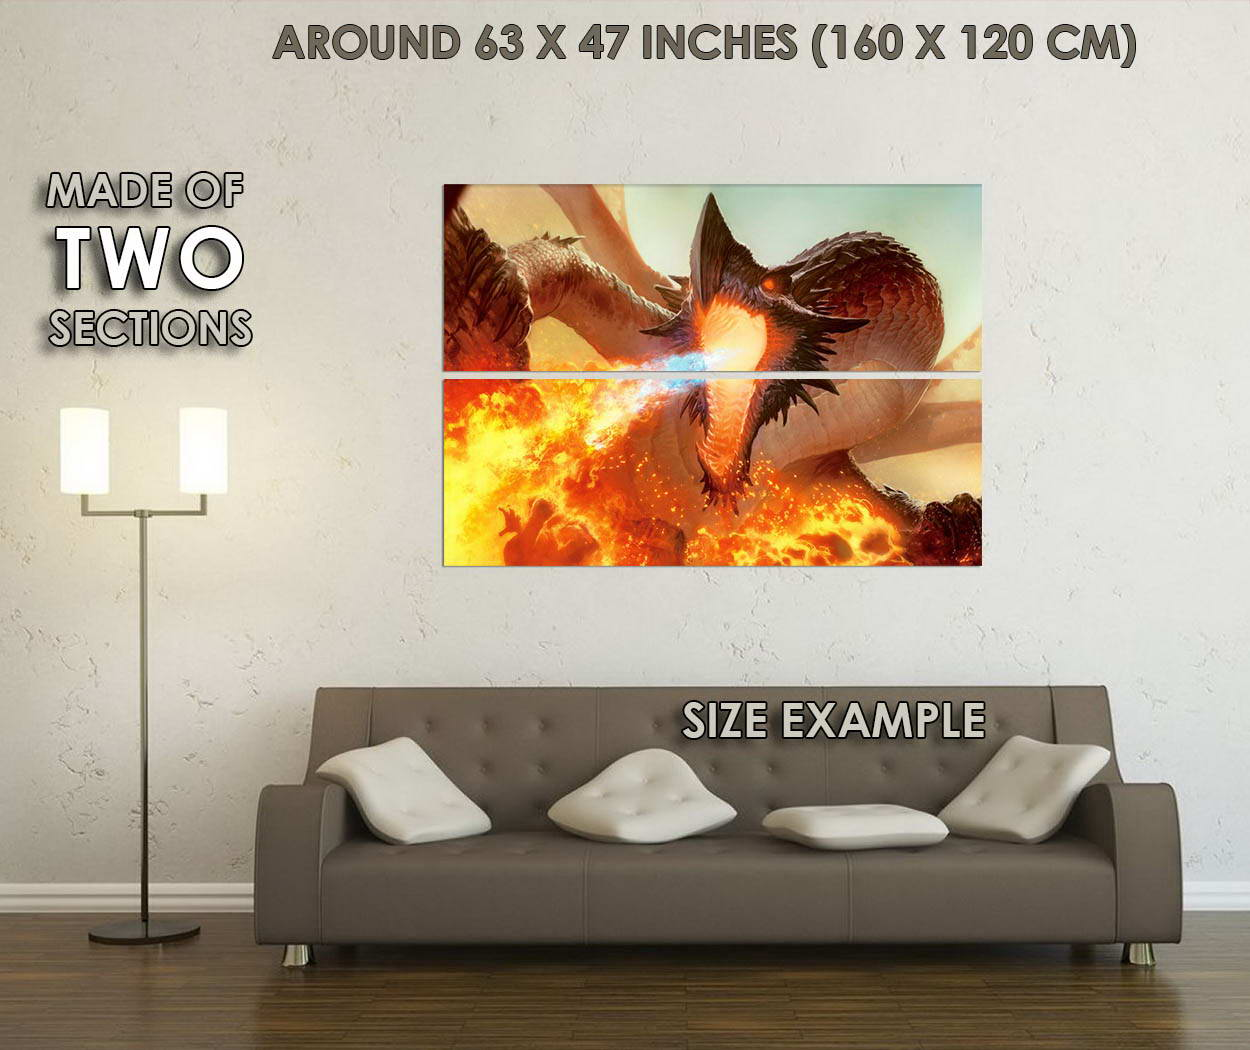 10432-Dragon-Fire-Fantasy-Art-LAMINATED-POSTER-CA thumbnail 6